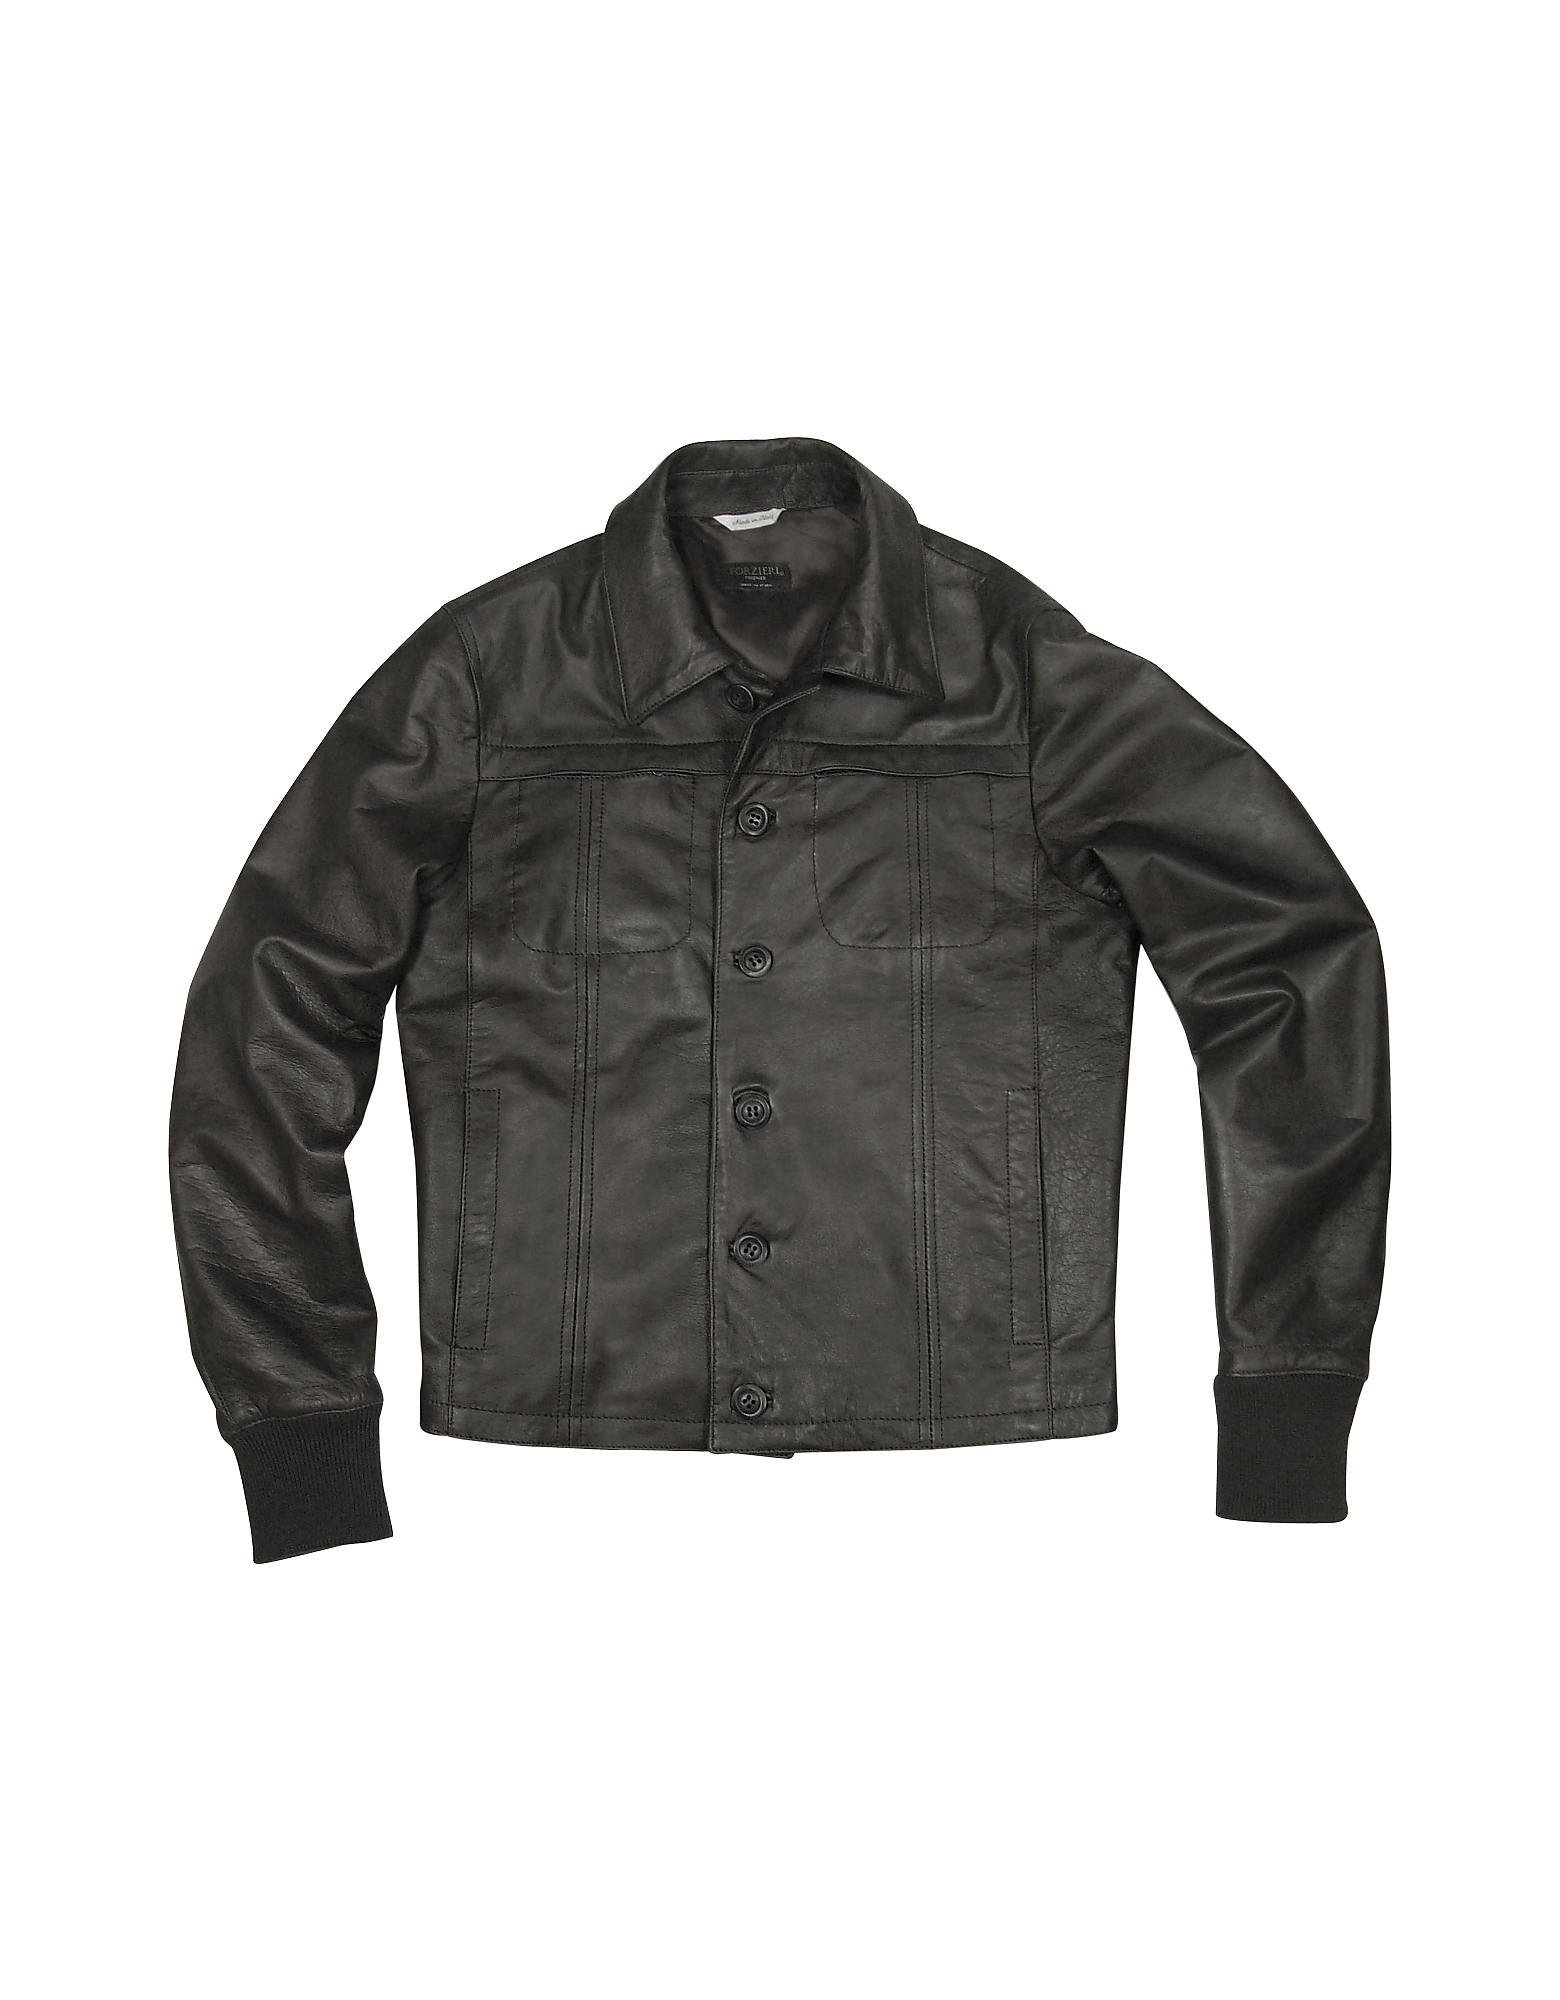 Black Men's Leather Jacket от Forzieri.com INT